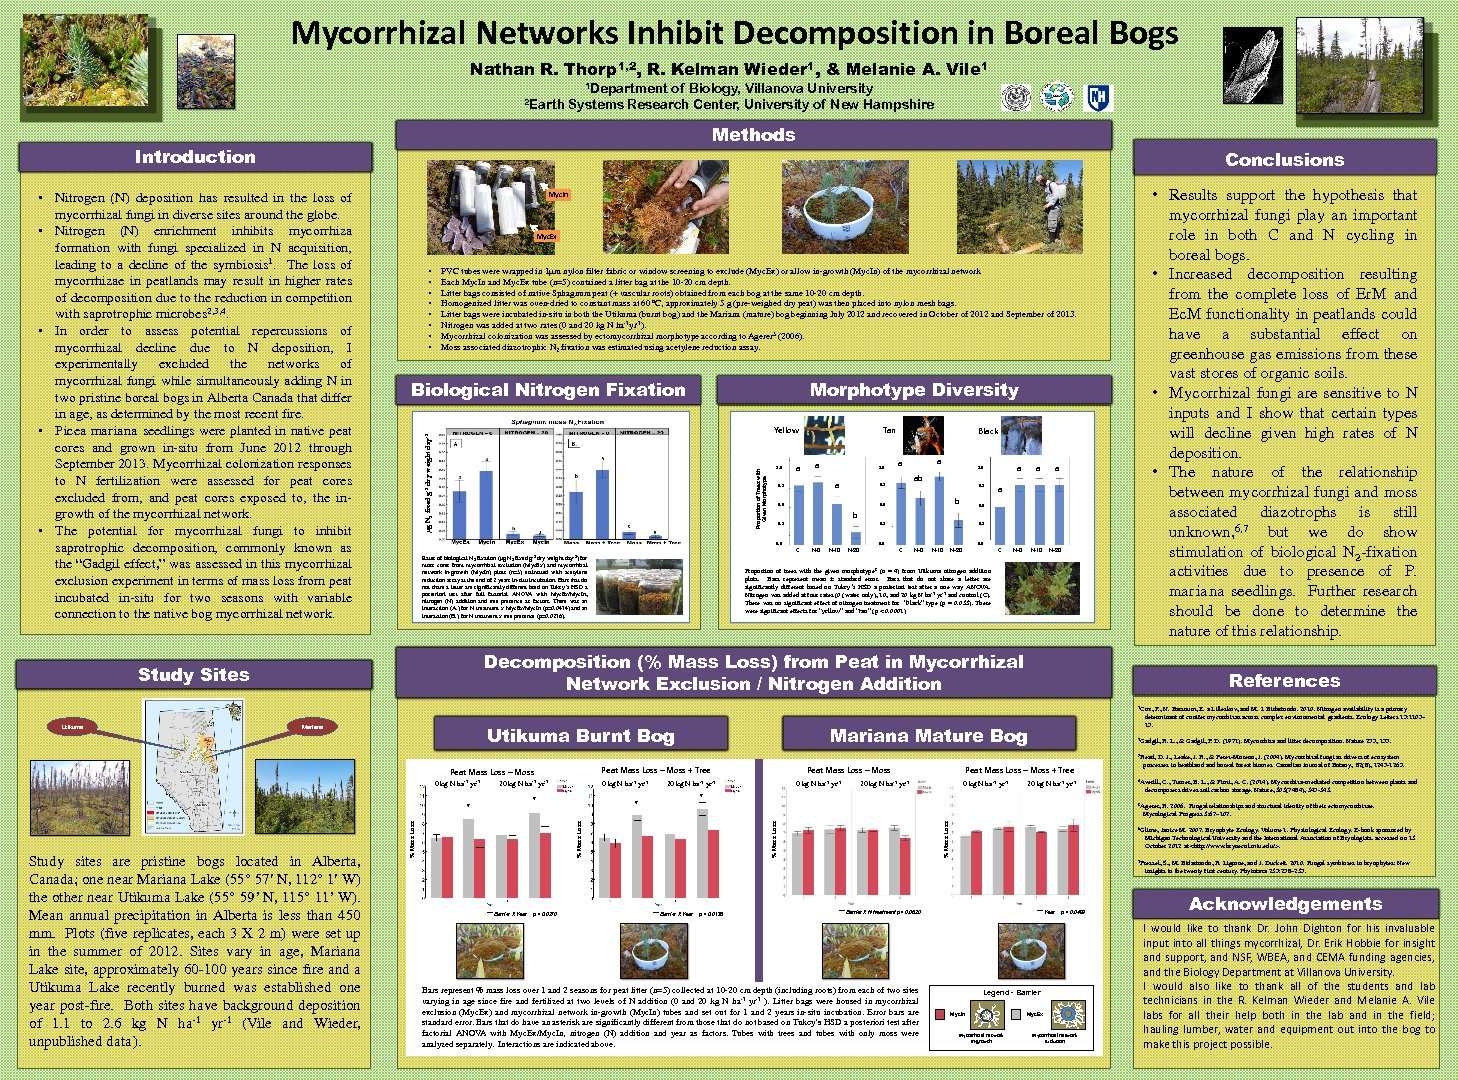 Mycorrhizal Networks Inhibit Decomposition In Boreal Bogs by nthorp